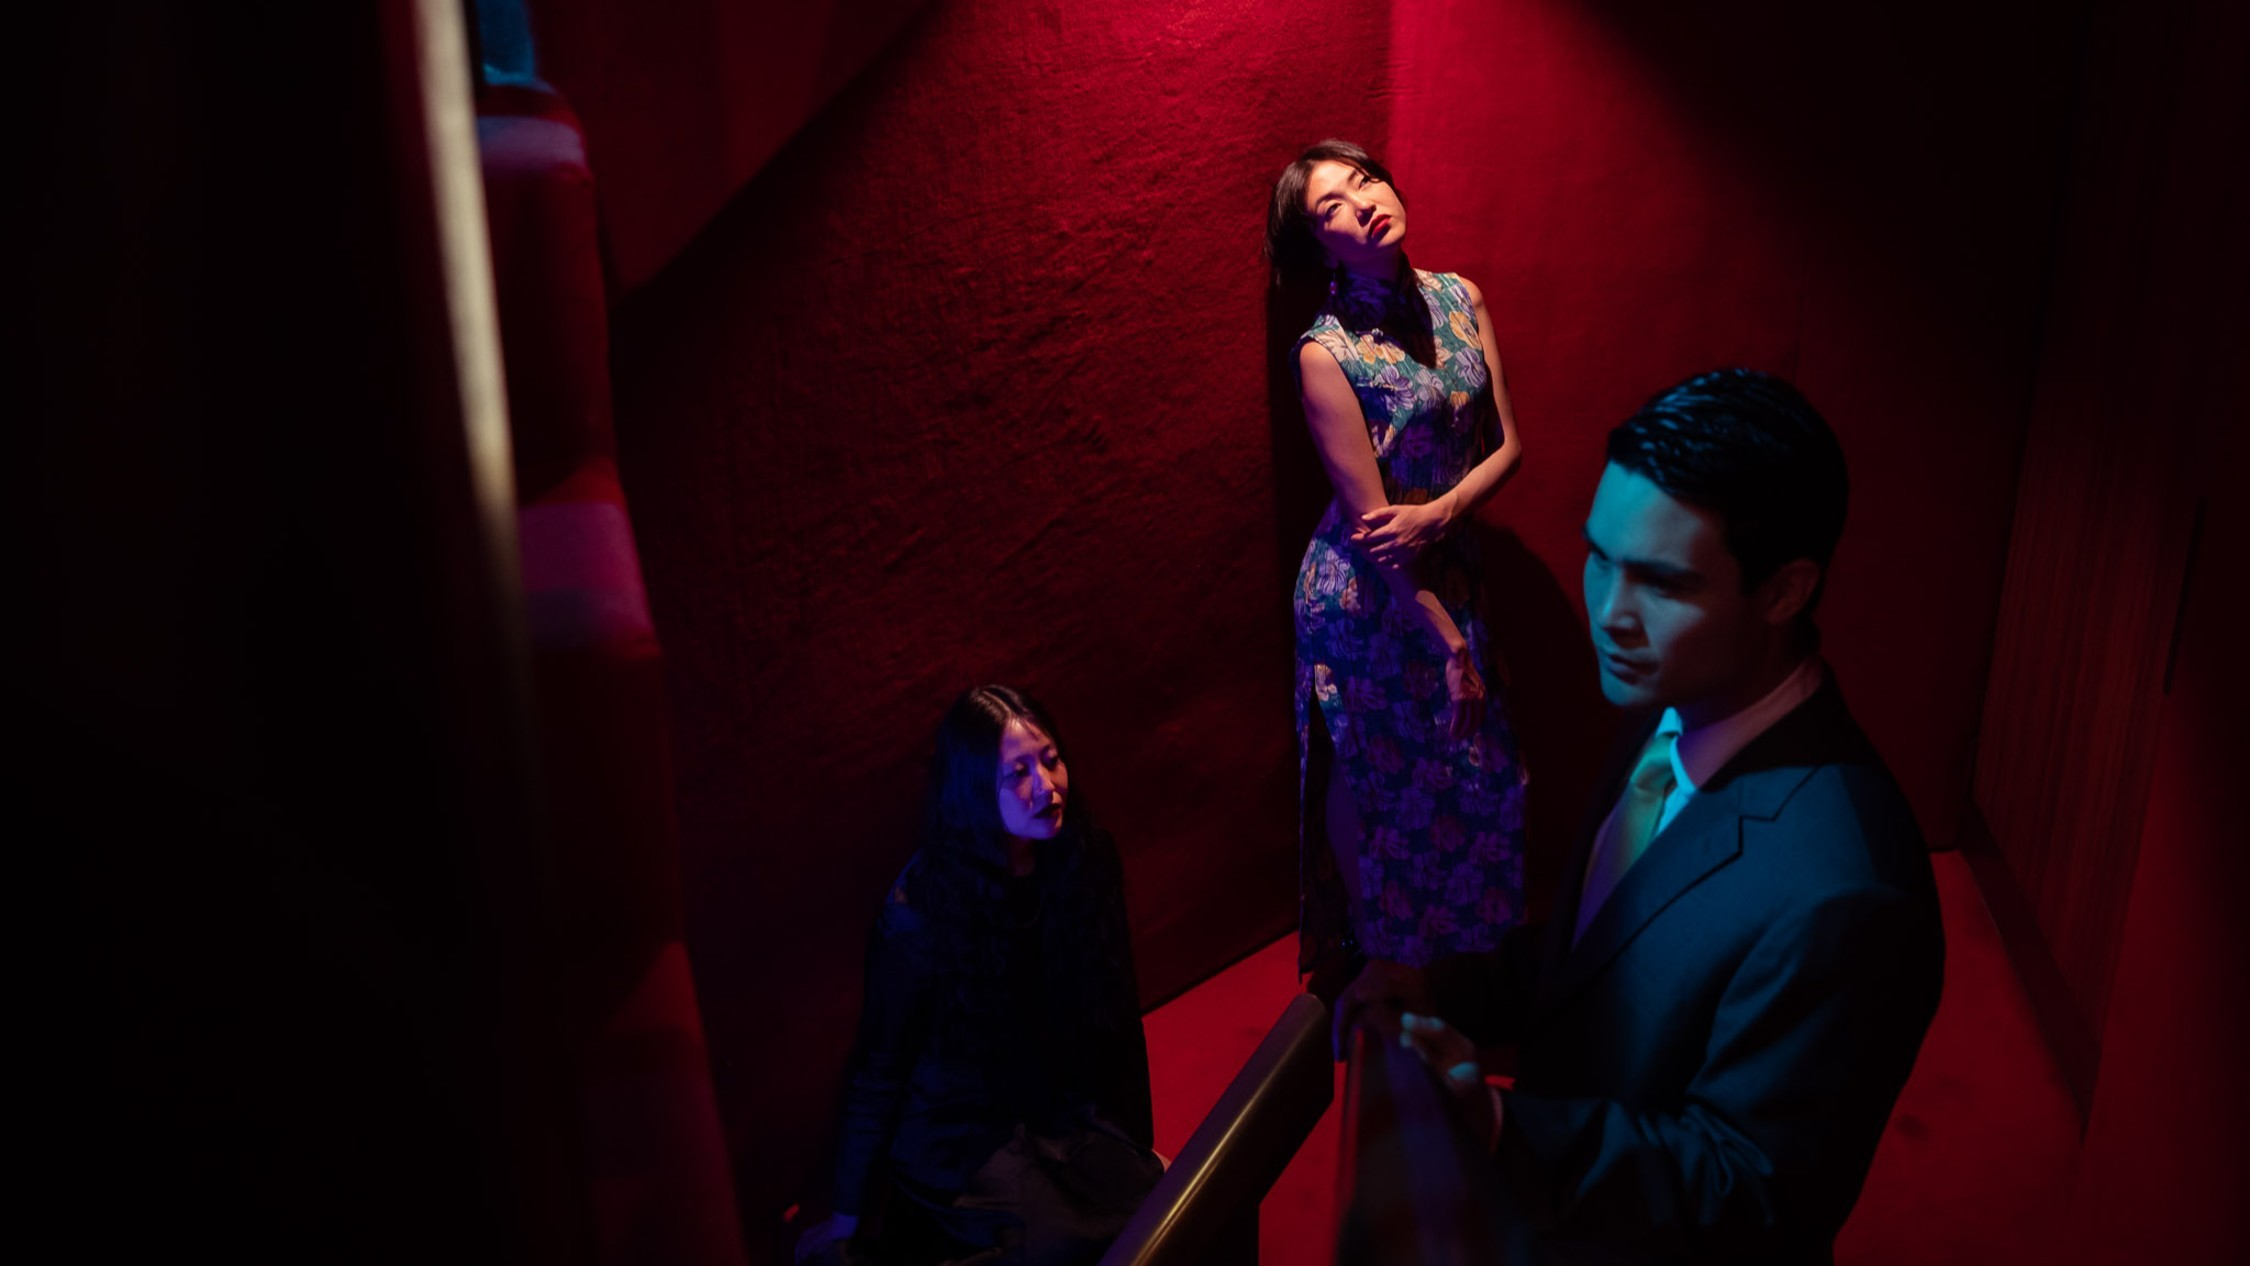 Rainbow Chan, Eugene Choi and Marcus Whale bathed in lighting reminiscent of Wong Kar-Wai's classic film In The Mood for Love